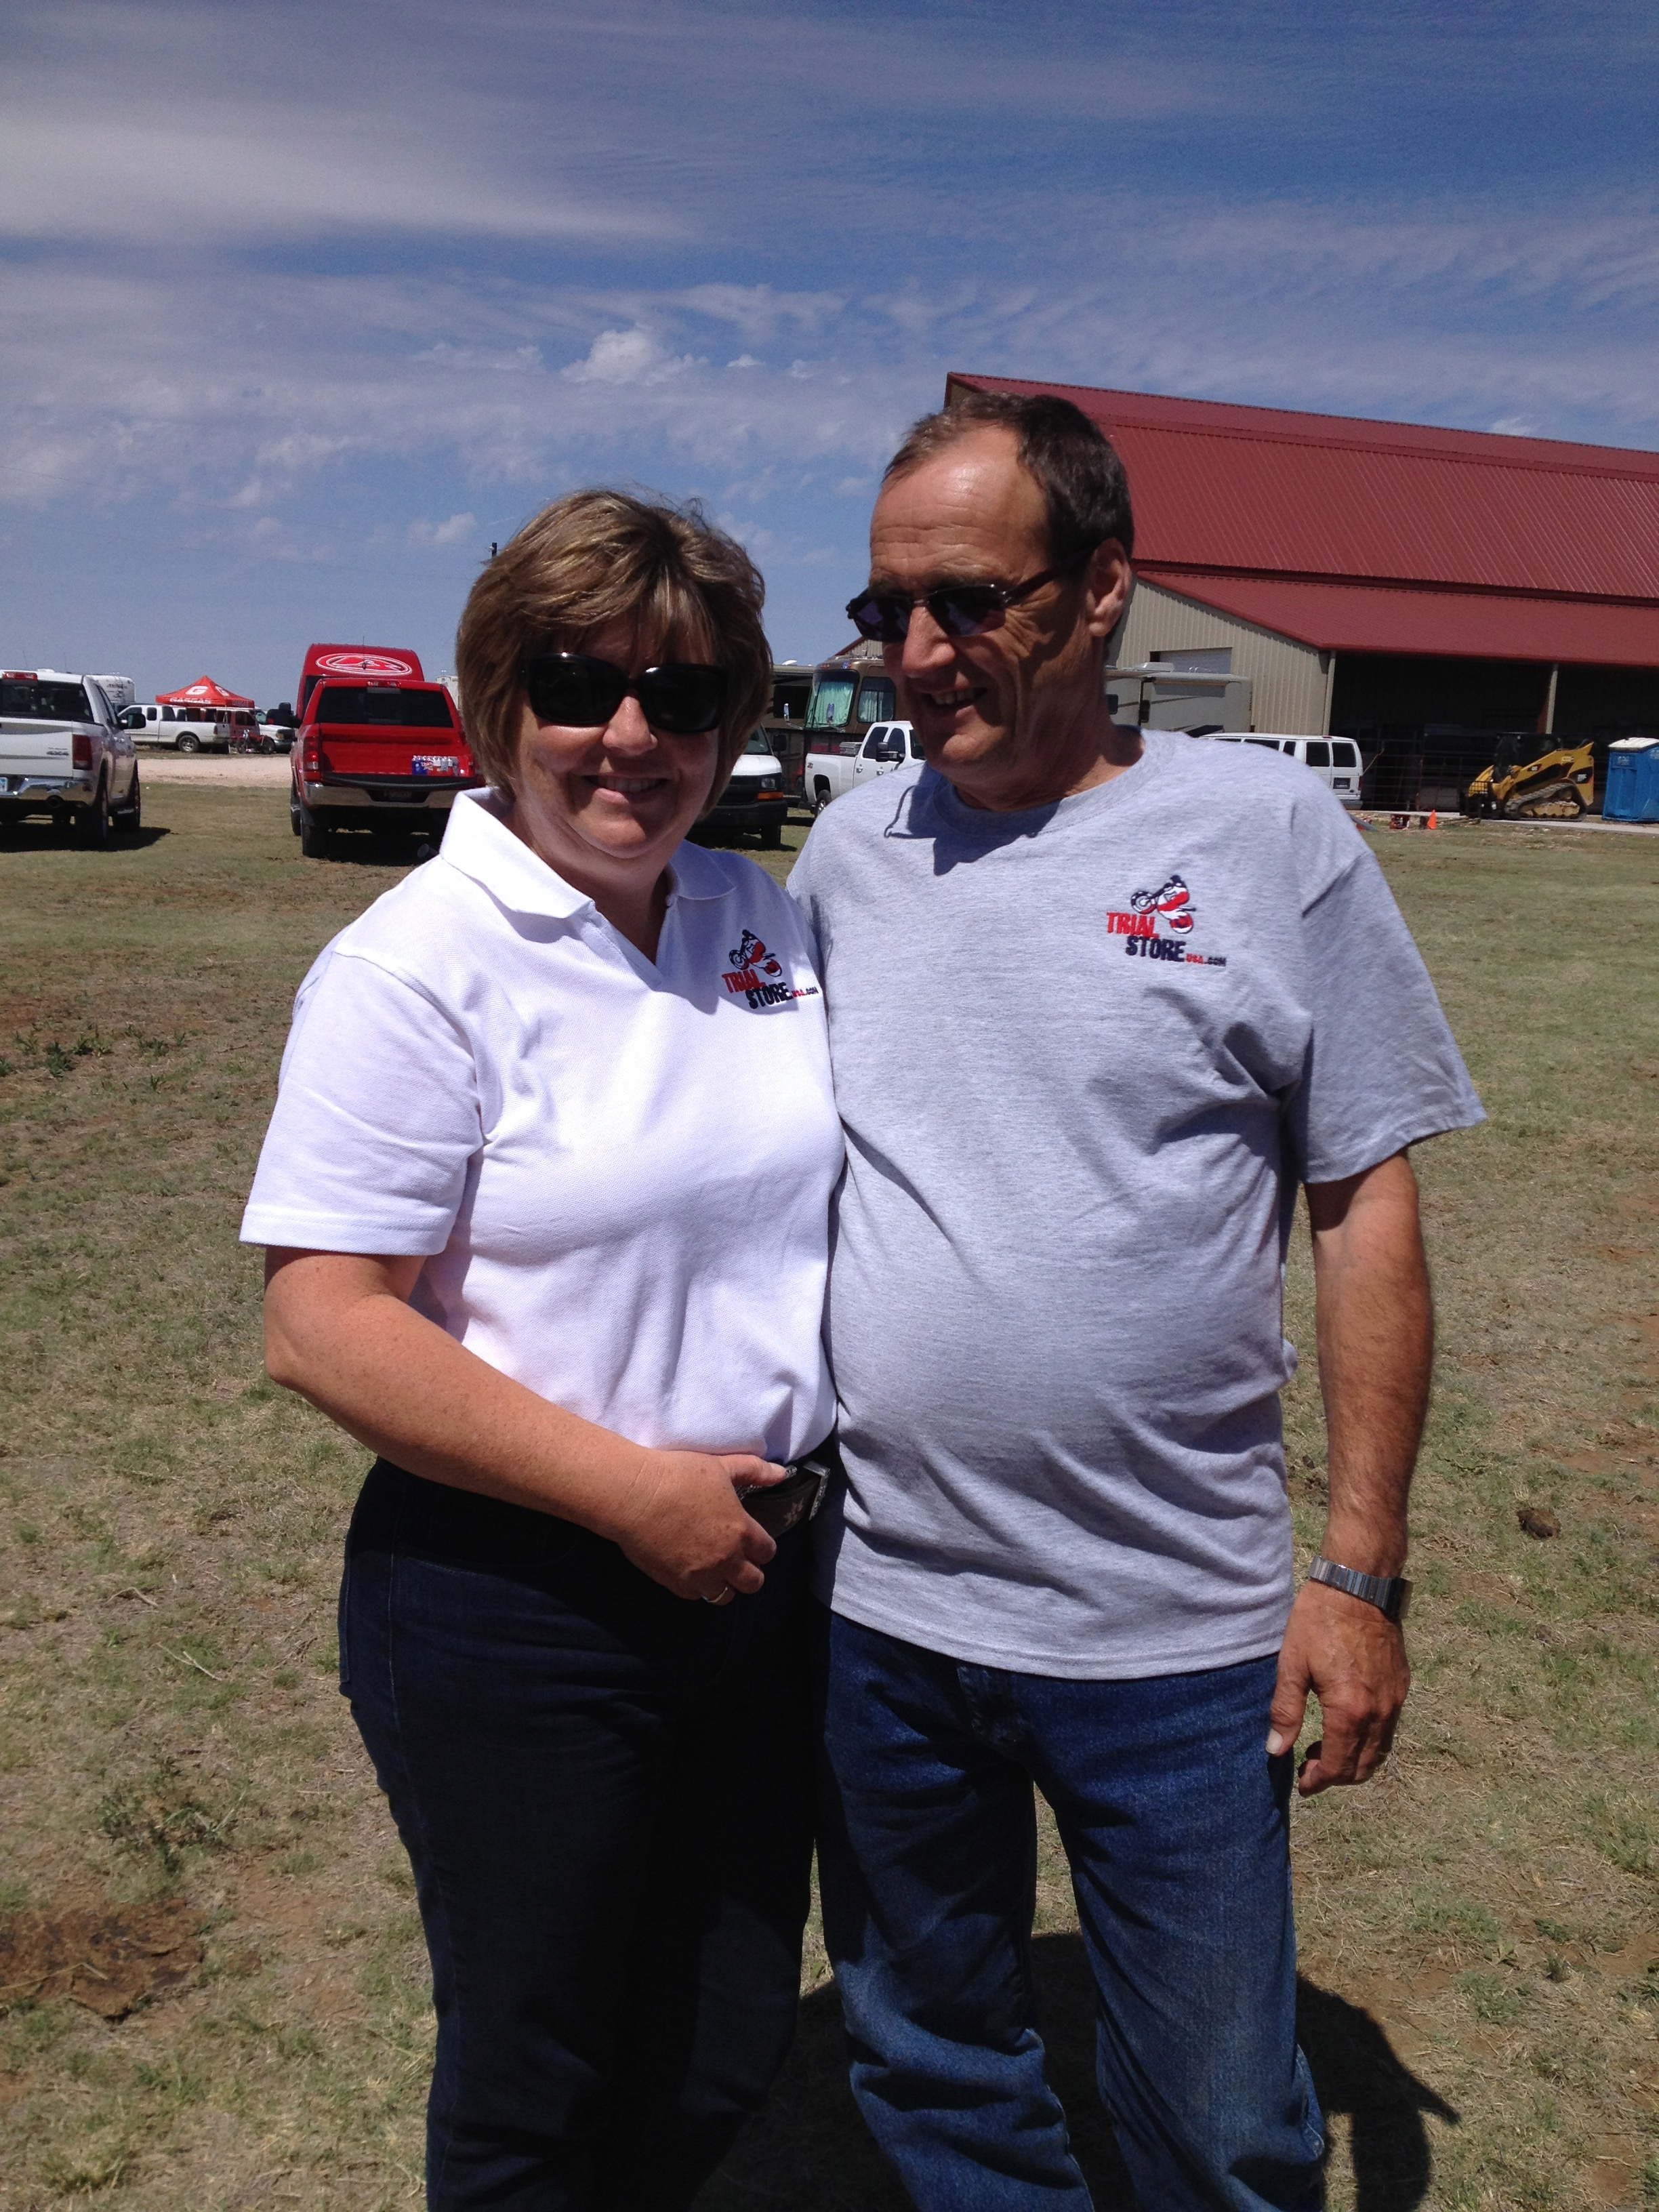 Karen and Tom Niederer owners of Trial Store USA.